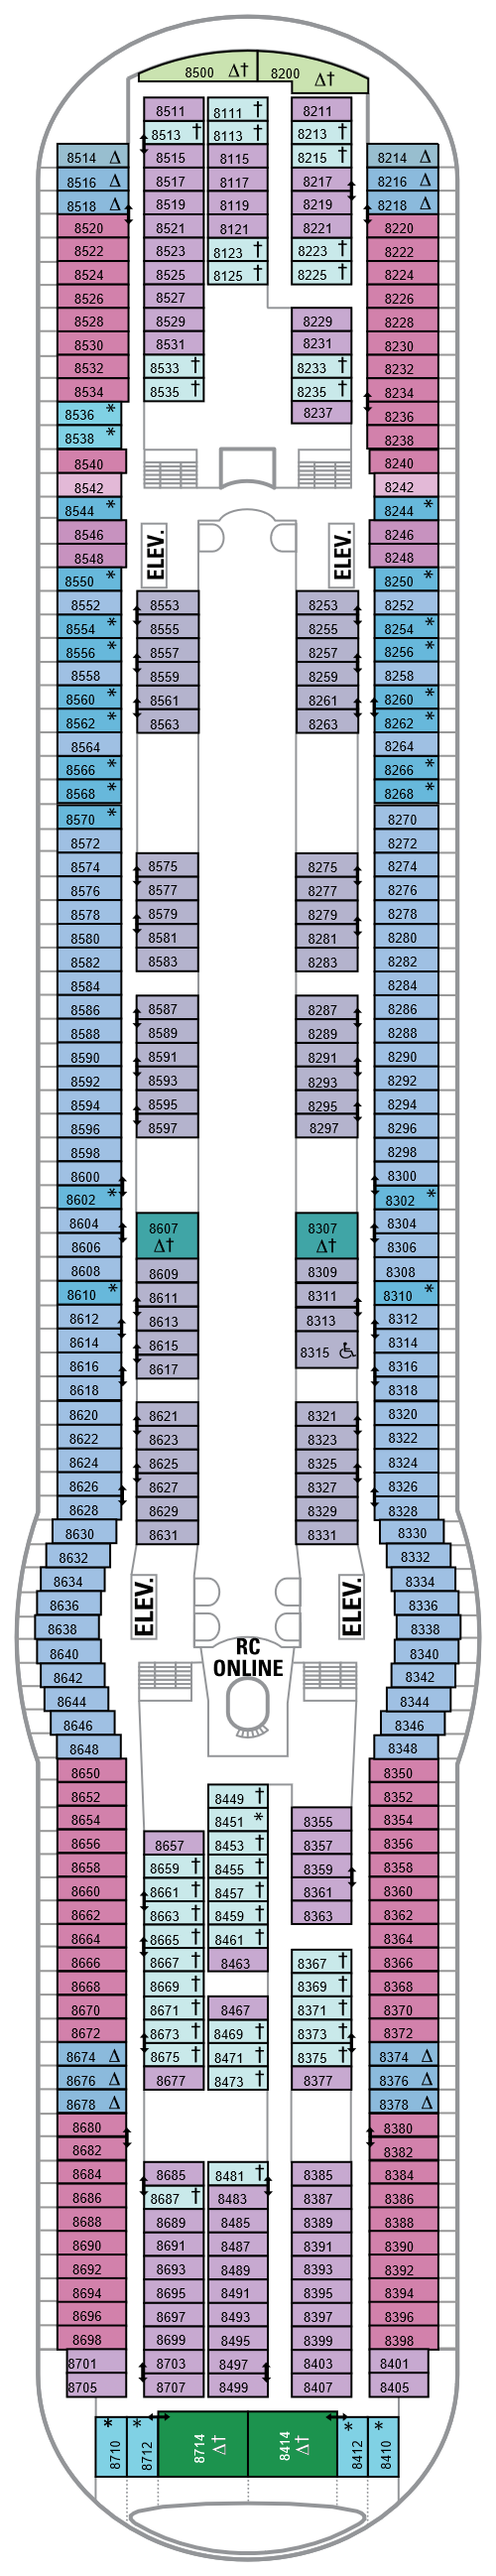 Freedom Of The Seas Deck 8 layout